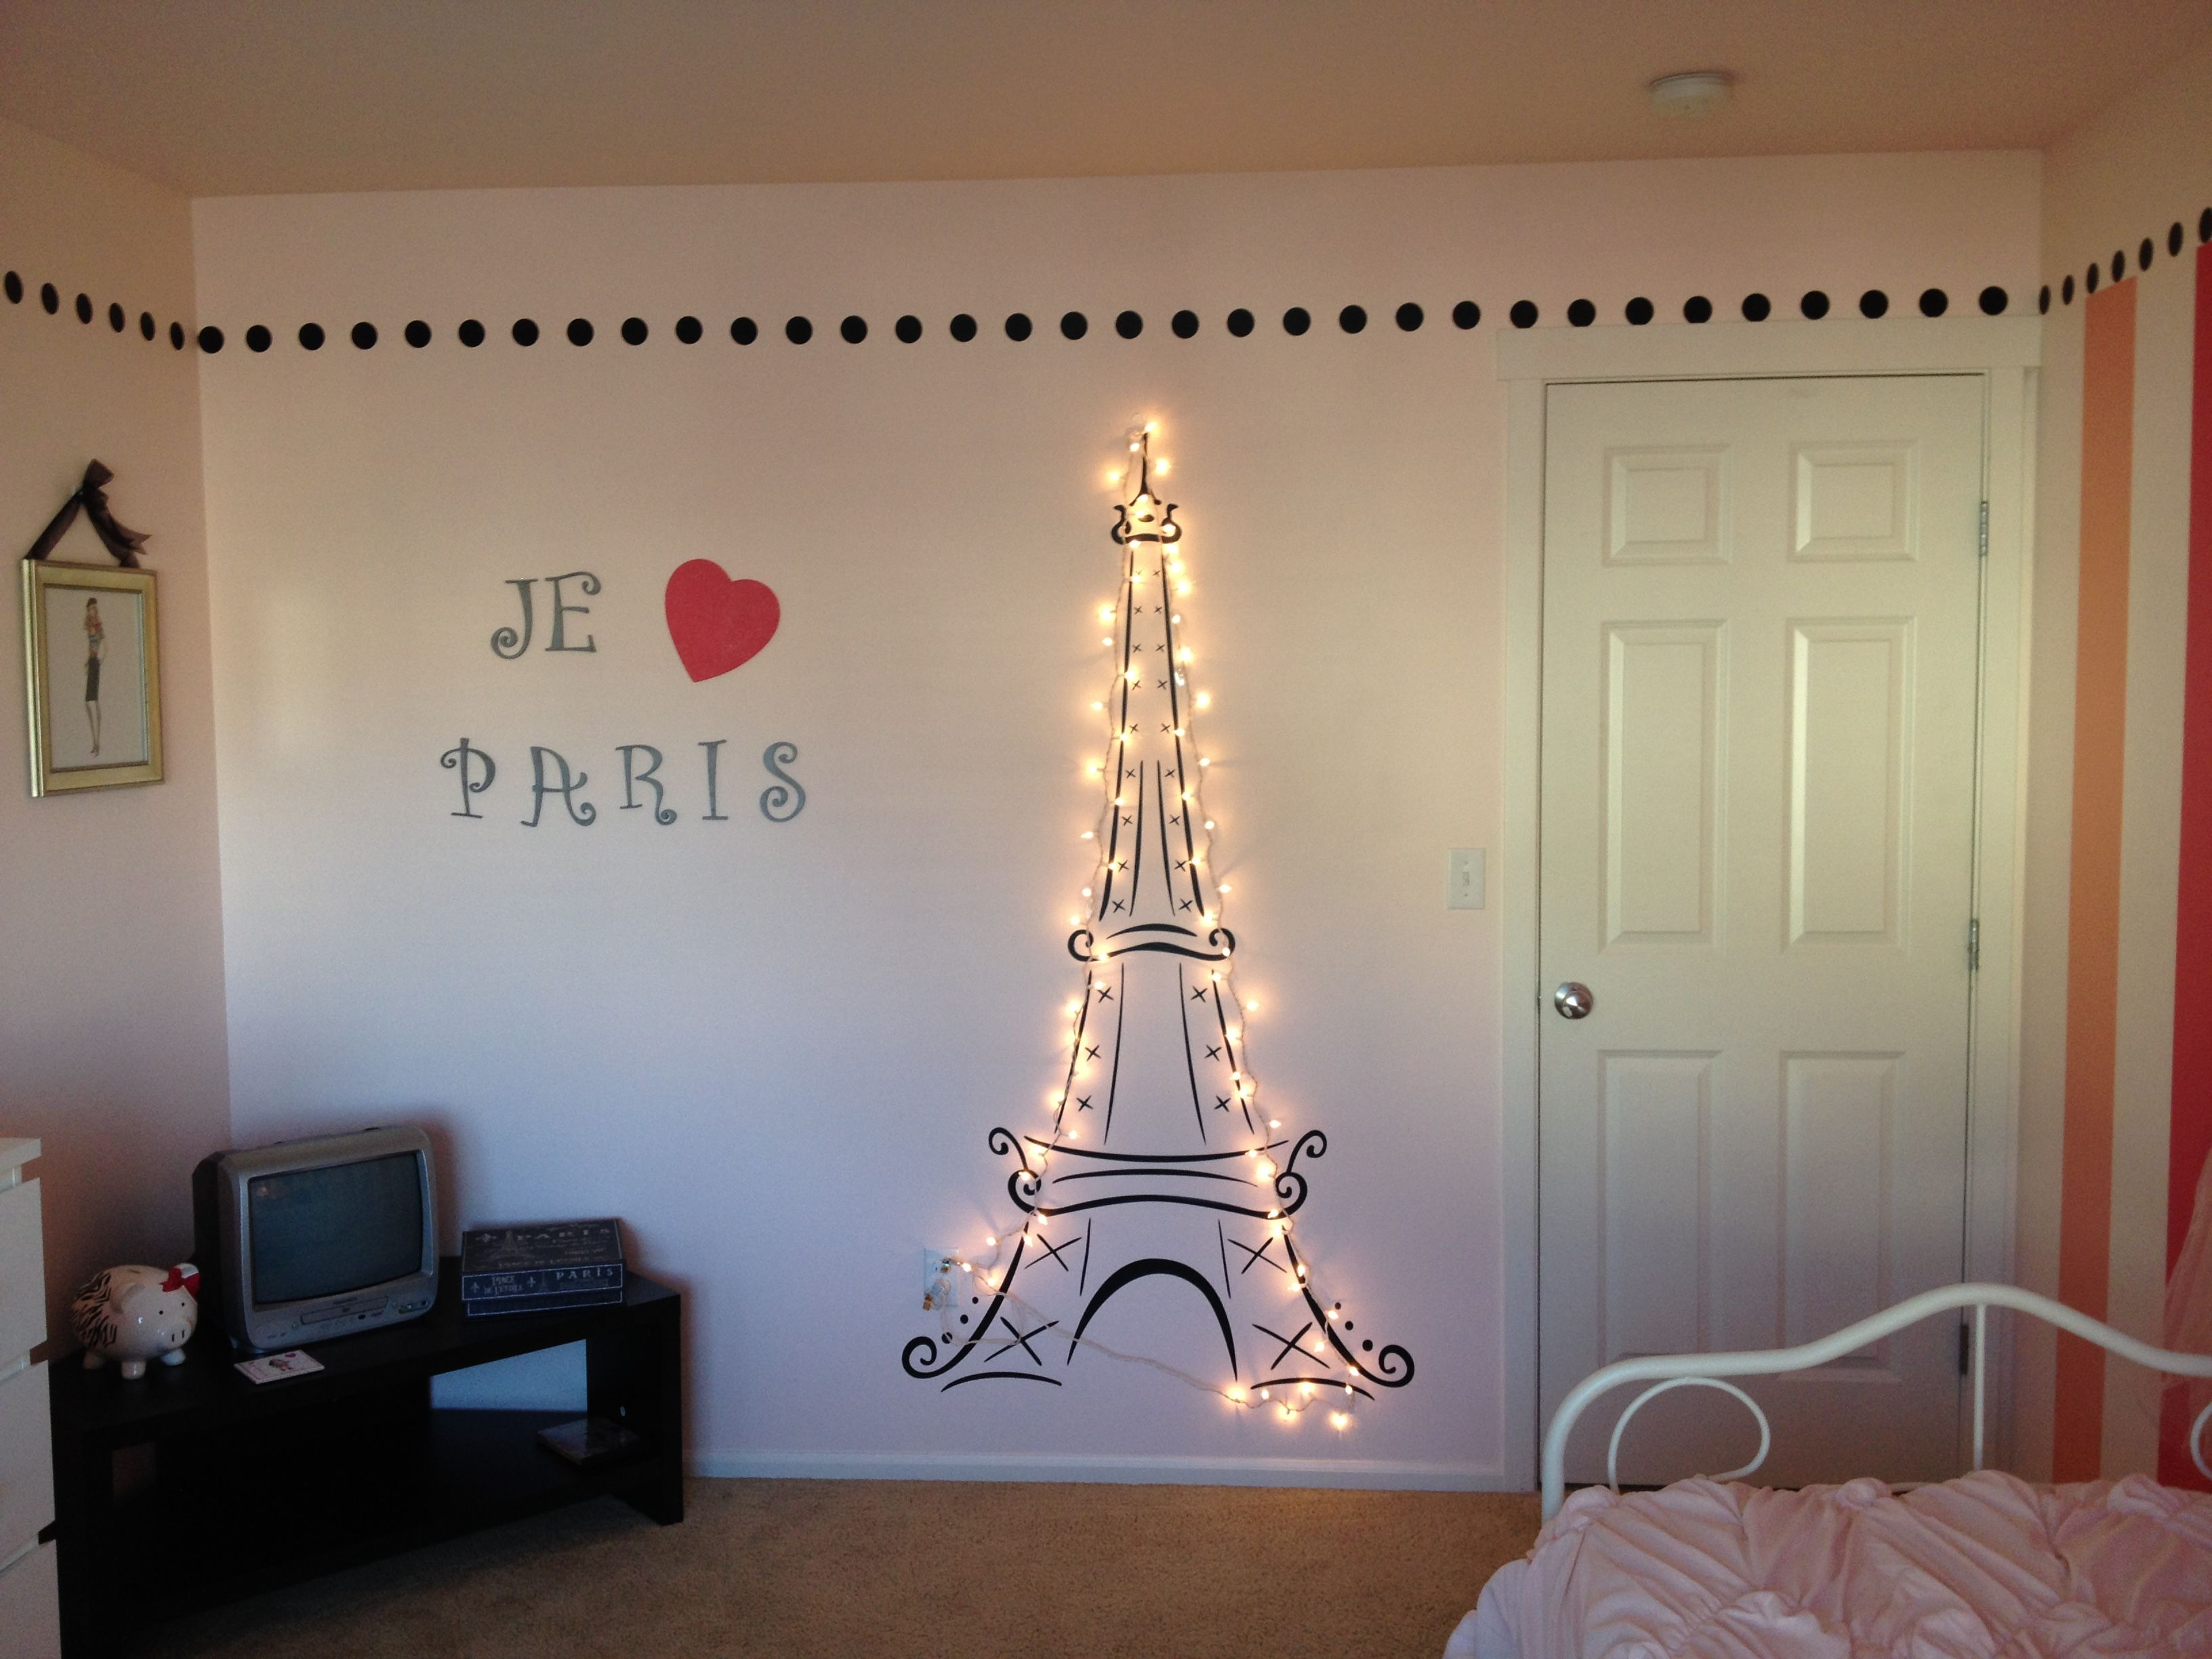 Beau Lit Eiffel Tower For My Daughteru0027s Paris Themed Room!